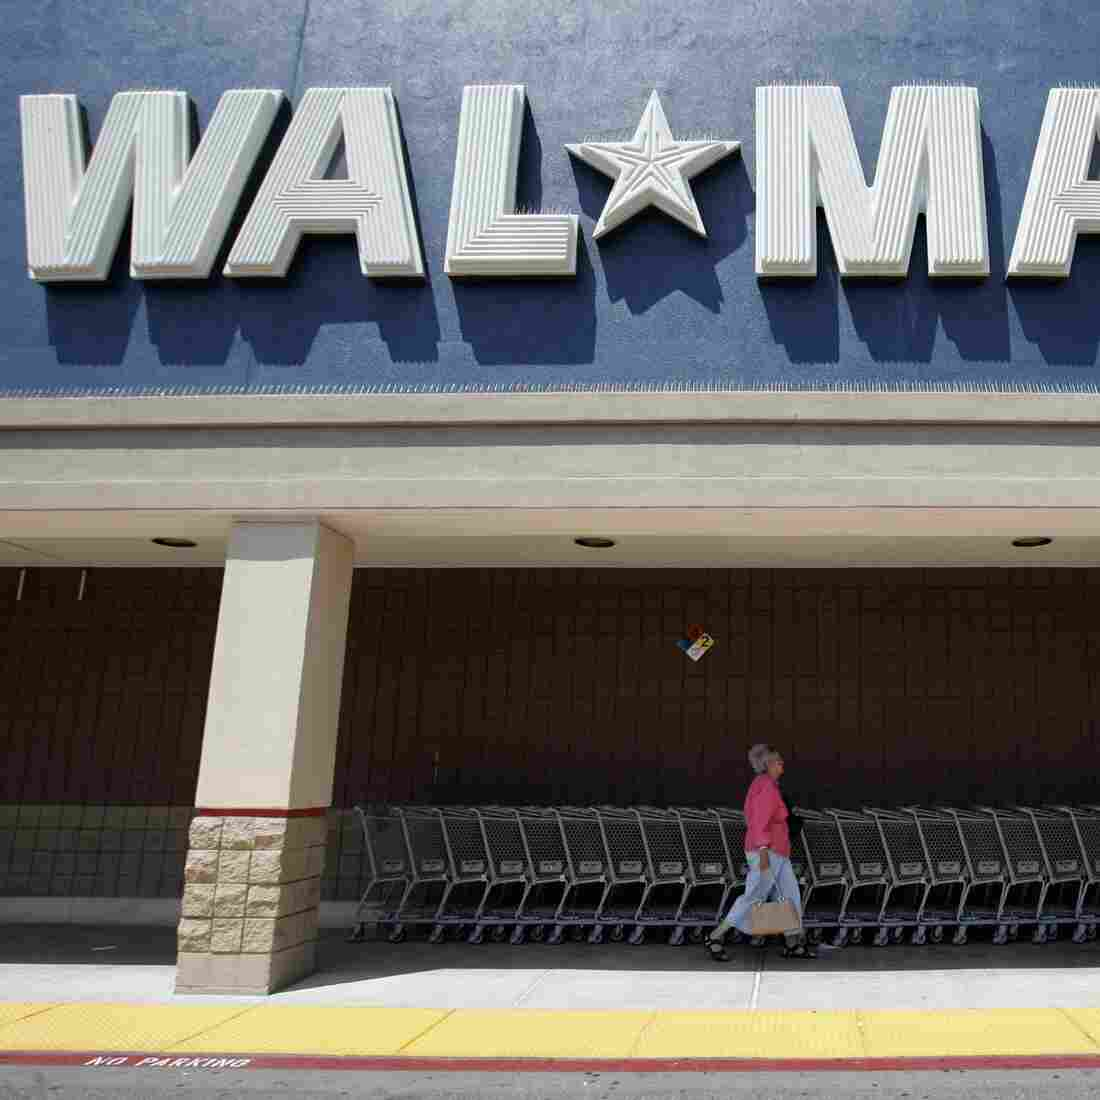 To Lure Shoppers, Wal-Mart Tries Same-Day Delivery